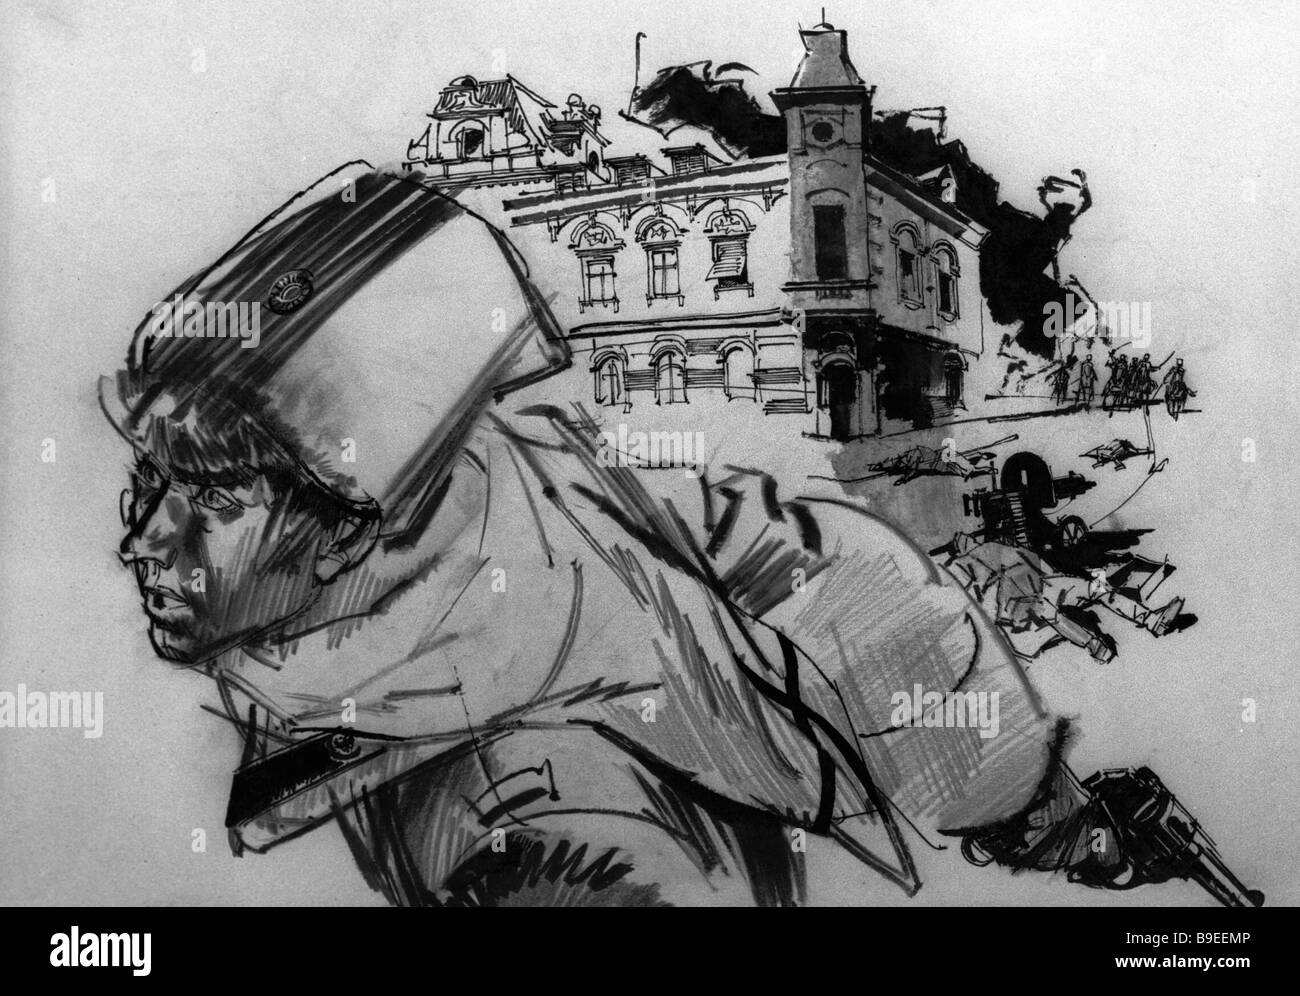 Illustration to Mikhail Bulgakov s novel The White Guards By Gennady Novoshilov Reproduction - Stock Image